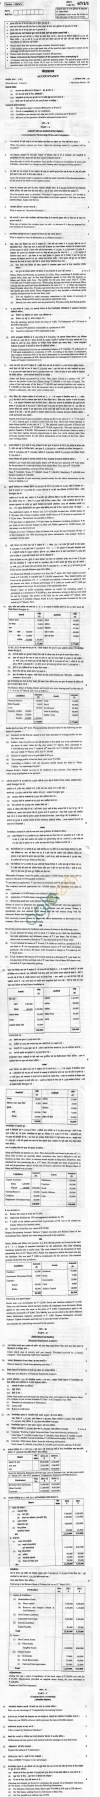 CBSE Board Exam 2013 Class XII Question Paper - Accountancy